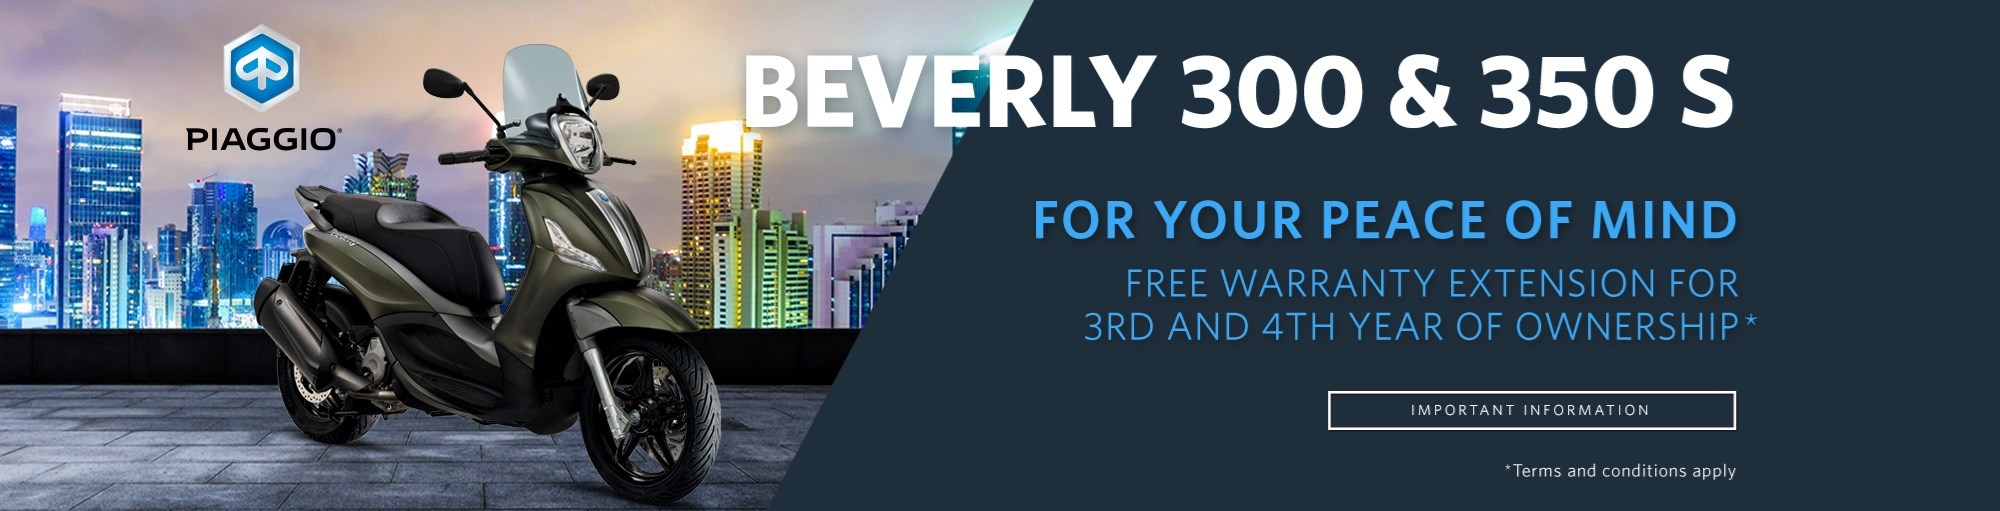 Beverly 300 & 350 S Extended Warranty